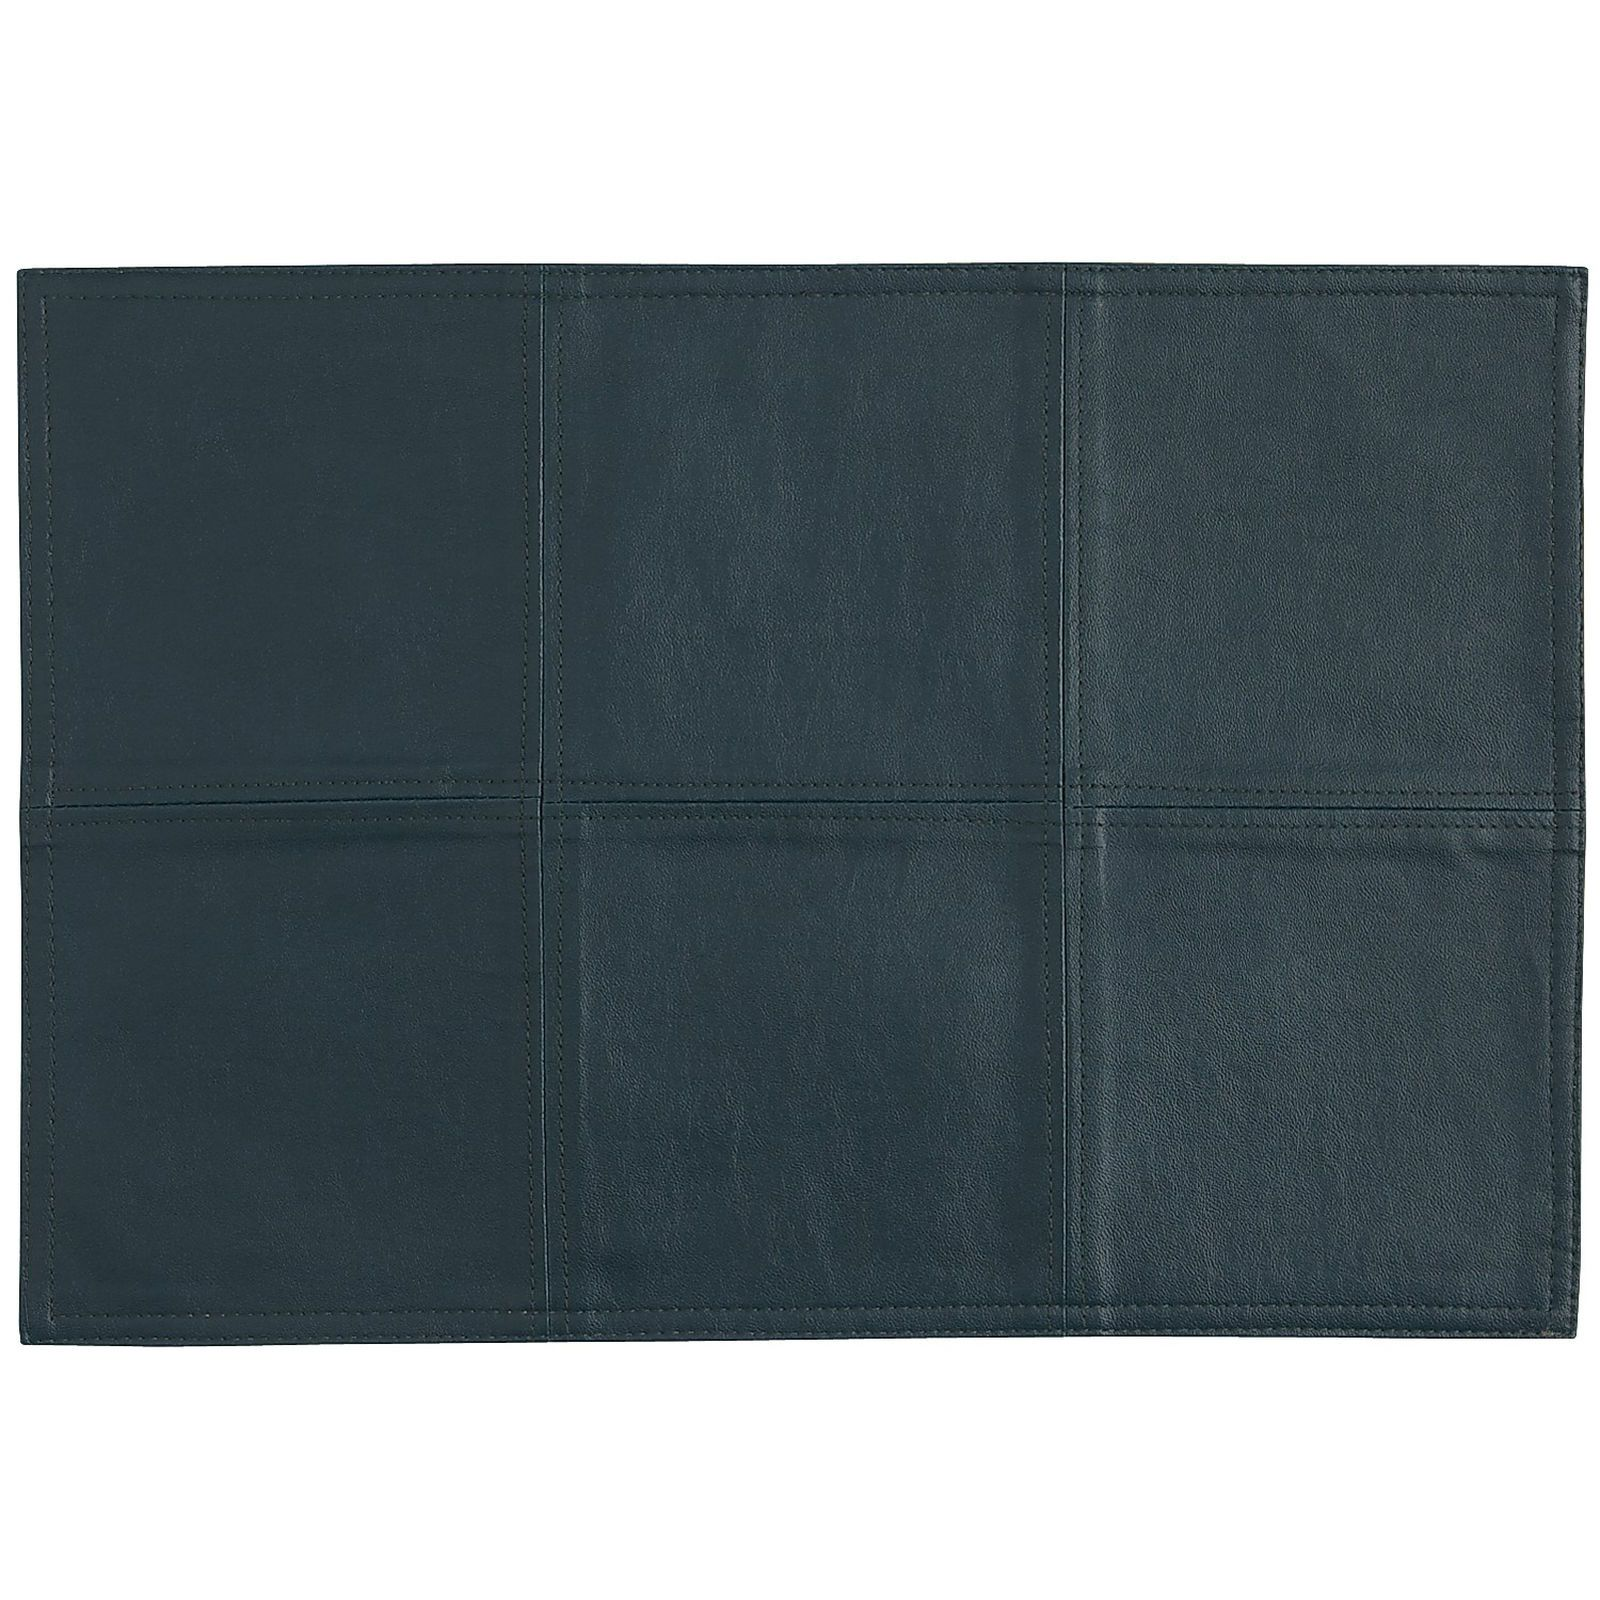 Faux Leather Reversible Placemat Avocado Teal Faux Leather Leather Faux